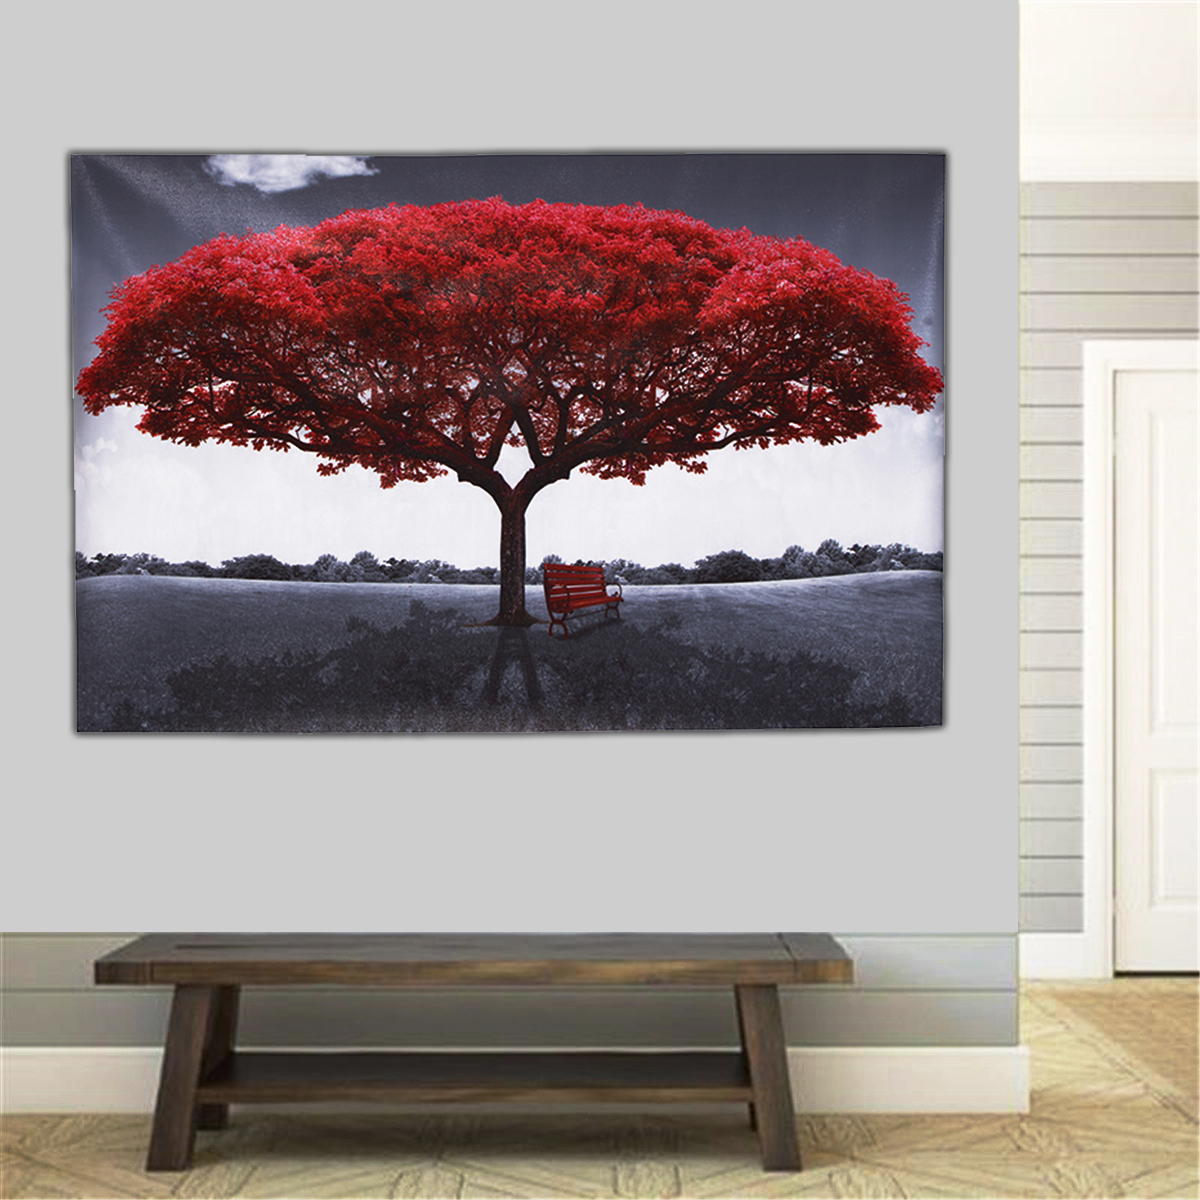 Large Red Tree Canvas Modern Home Wall Decor Art Paintings Picture Print No Frame Home Decorations